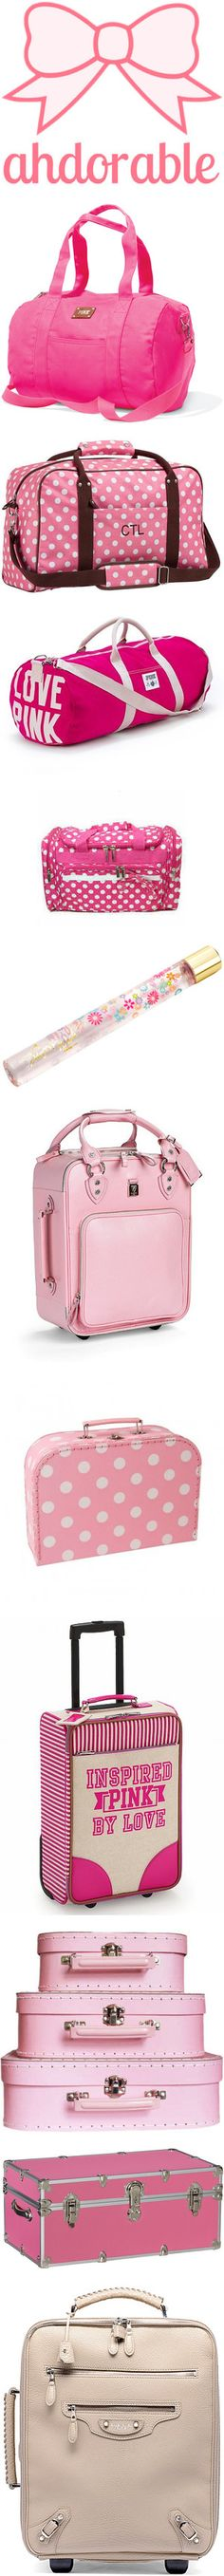 """""""claire's luggage!"""" by annabelle-lewis ❤ liked on Polyvore"""